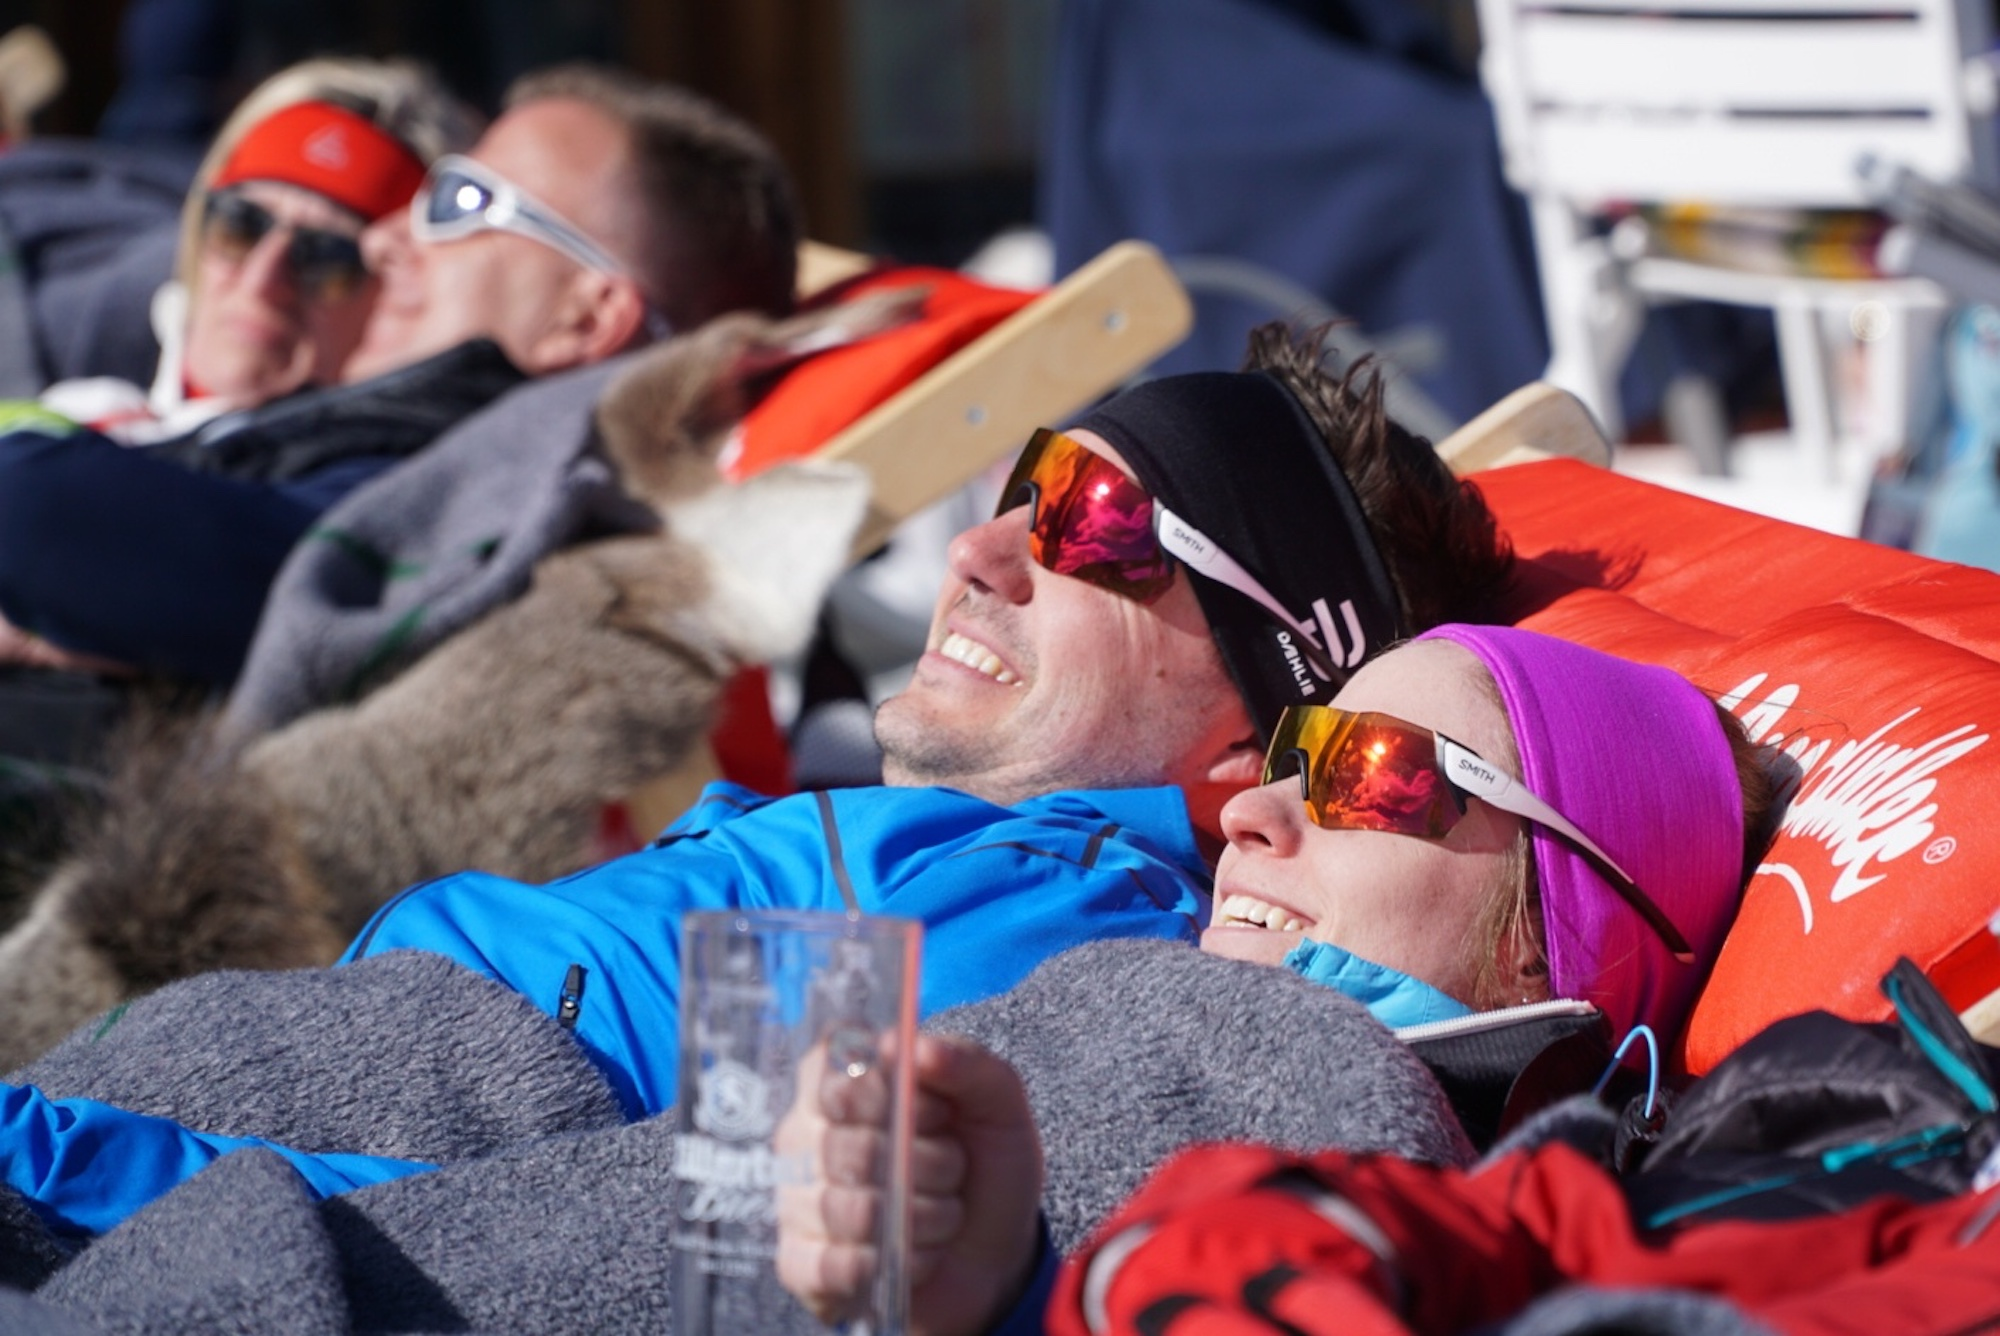 https://fasterskier.com/wp-content/blogs.dir/1/files/2020/03/3-A-cold-beer-and-warm-sunshine-Lumi-Experiences-Seefeld-Engadin.jpeg